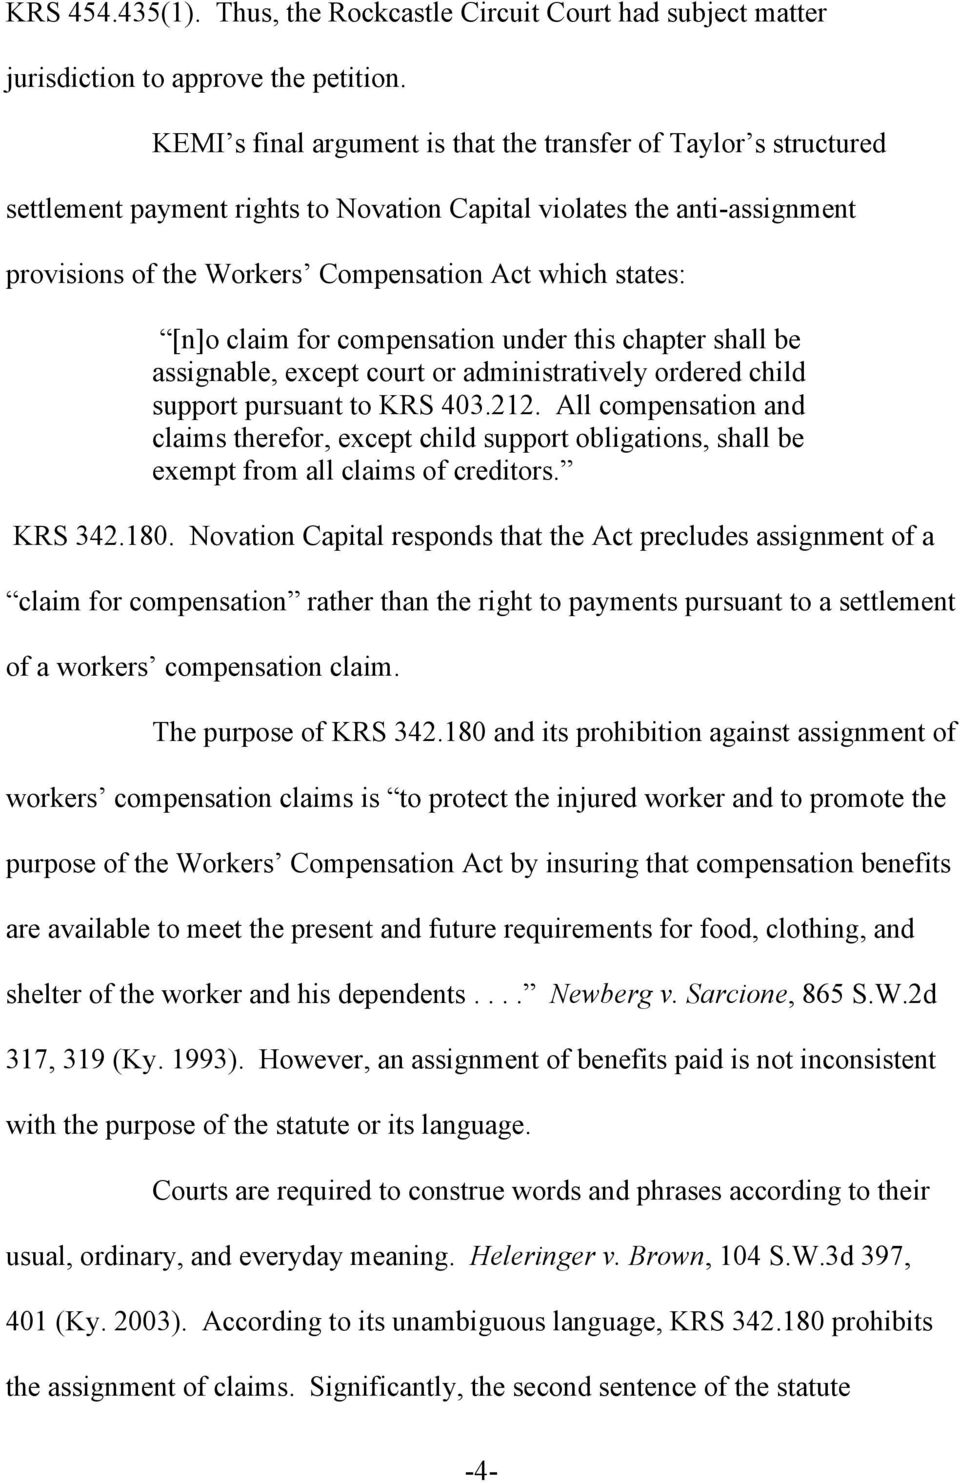 [n]o claim for compensation under this chapter shall be assignable, except court or administratively ordered child support pursuant to KRS 403.212.